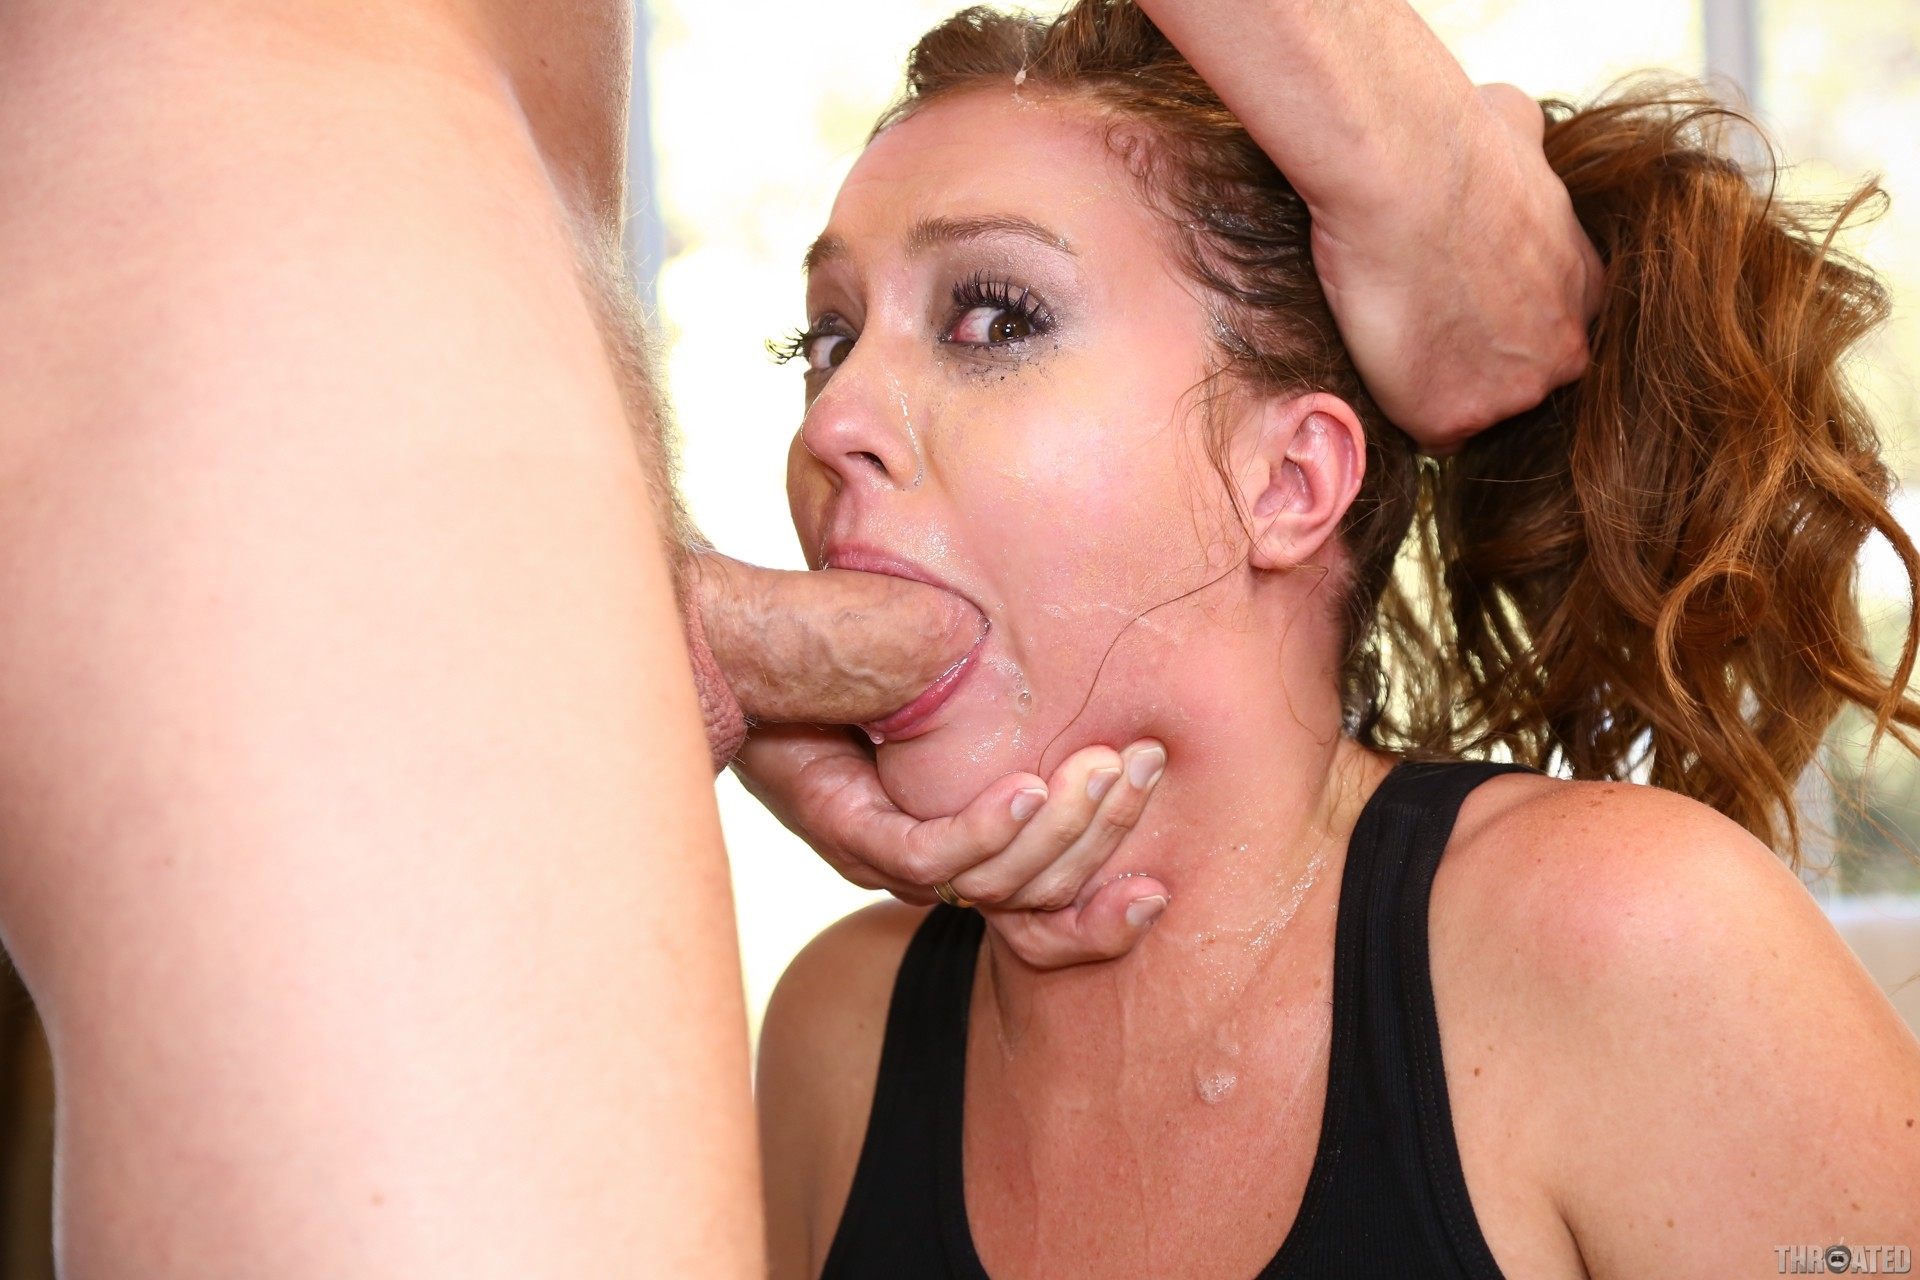 deep-throat-extreme-video-clips